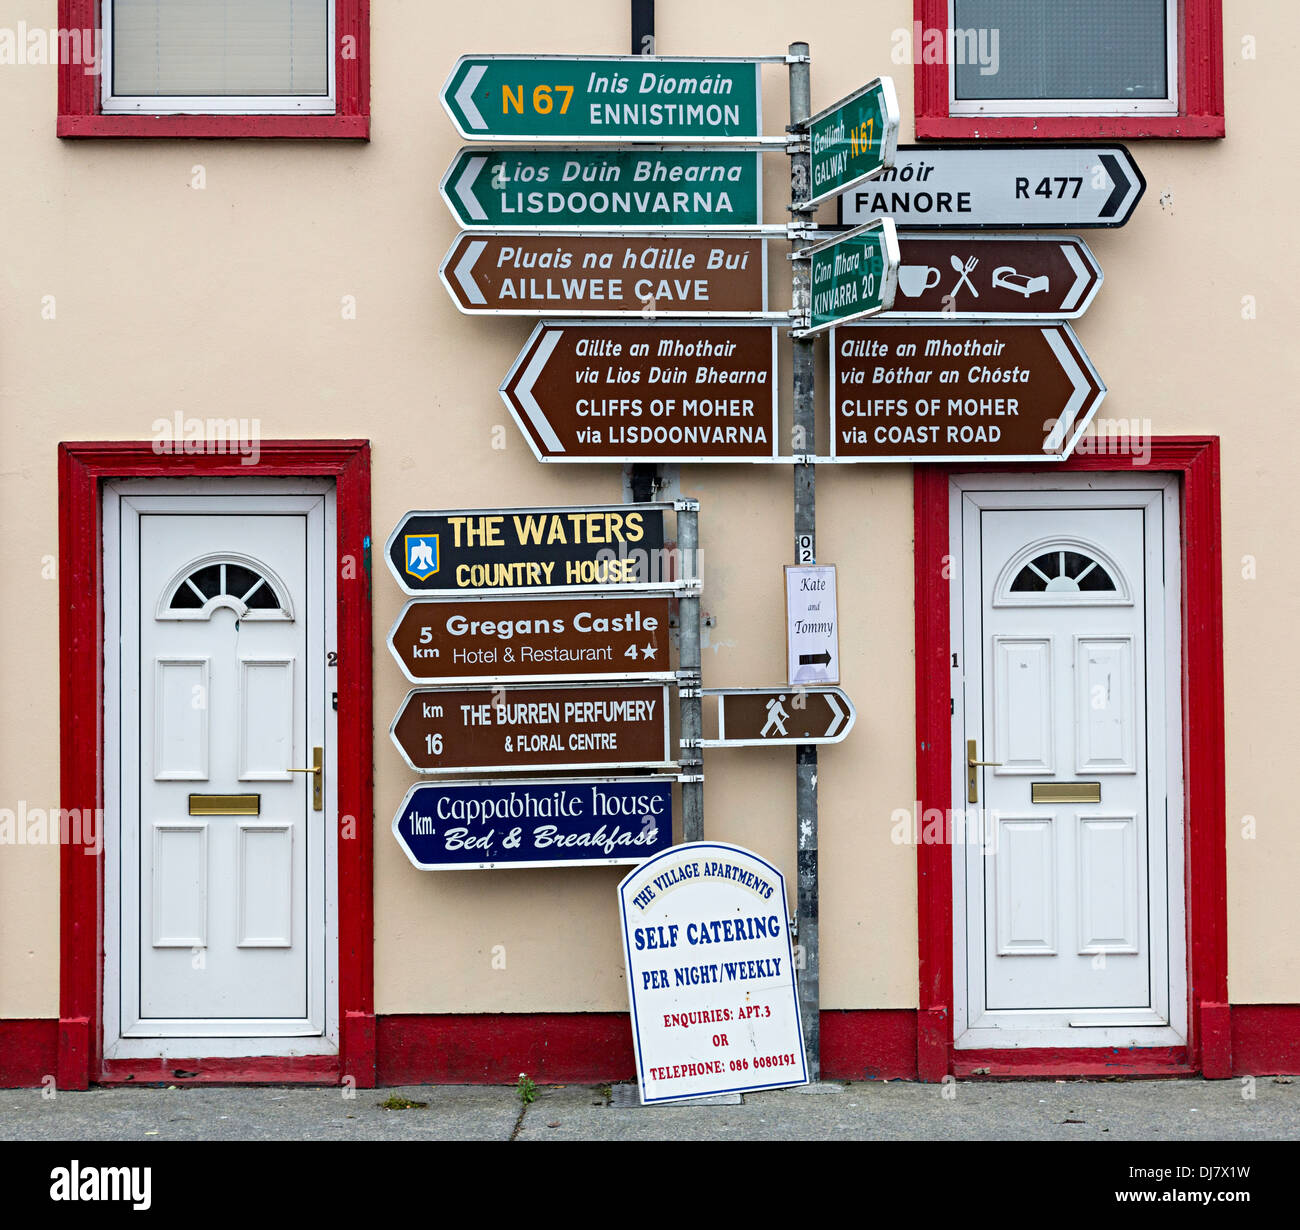 Road signs and doorways, Ballyvaughan, Co. Clare, Ireland - Stock Image